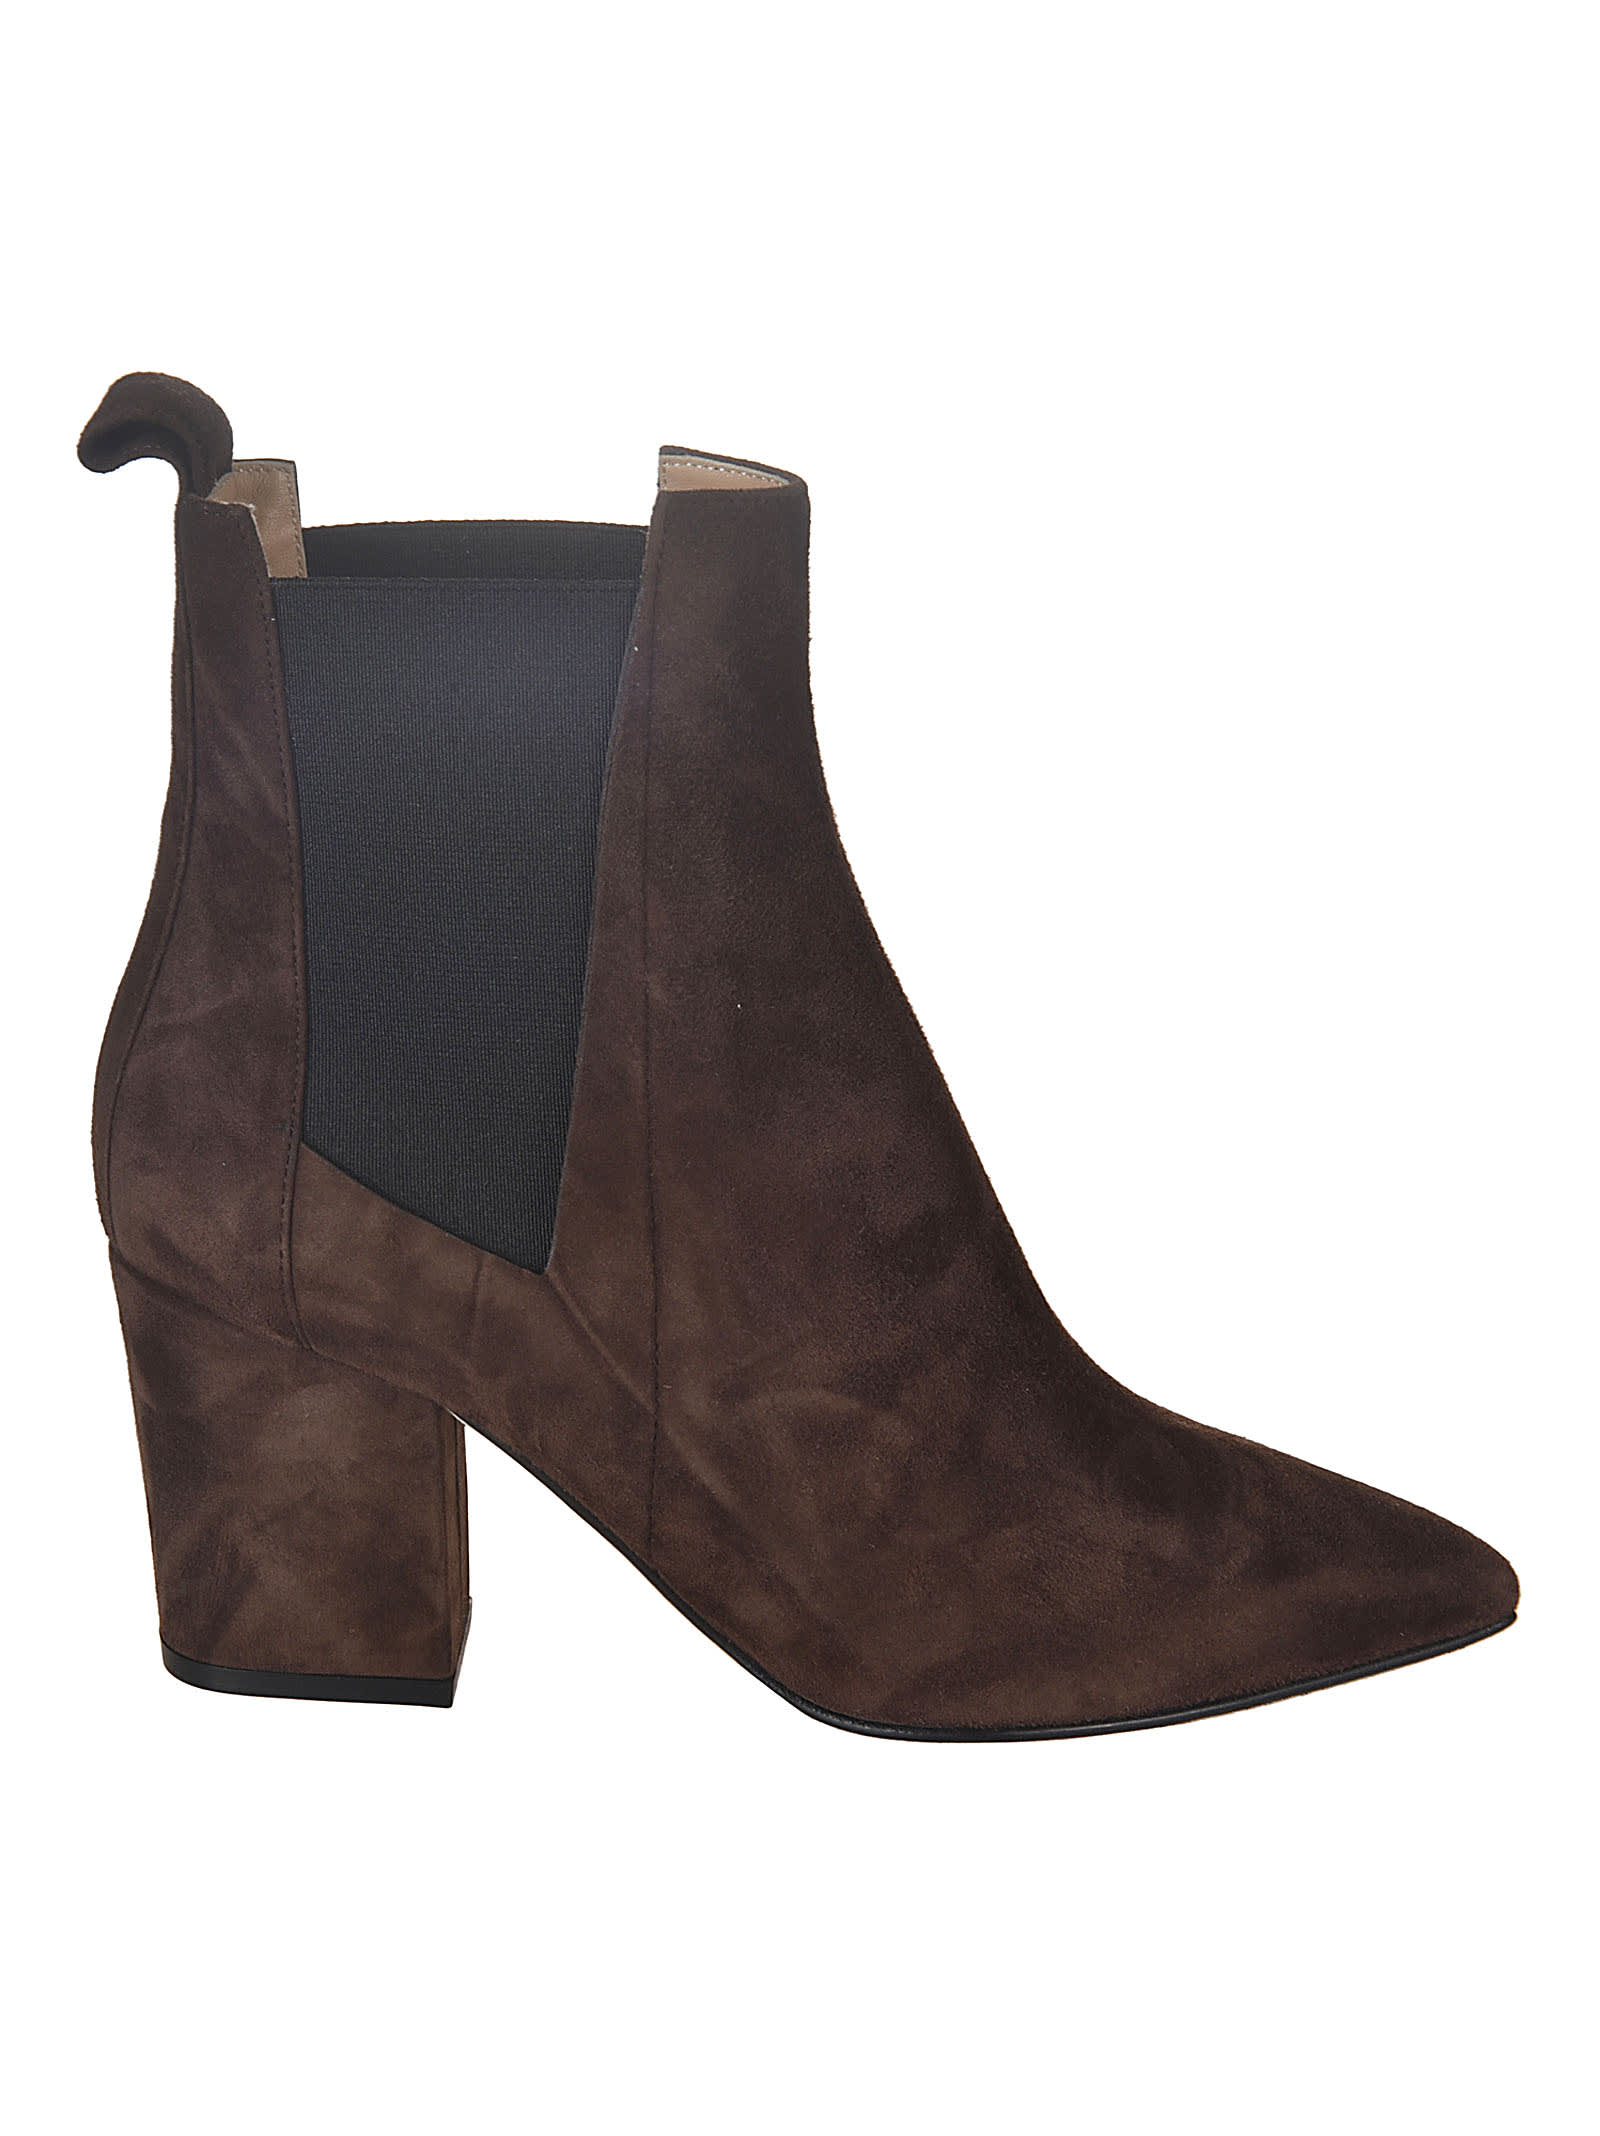 Buy Sergio Rossi Side Elastic Detail Boots online, shop Sergio Rossi shoes with free shipping